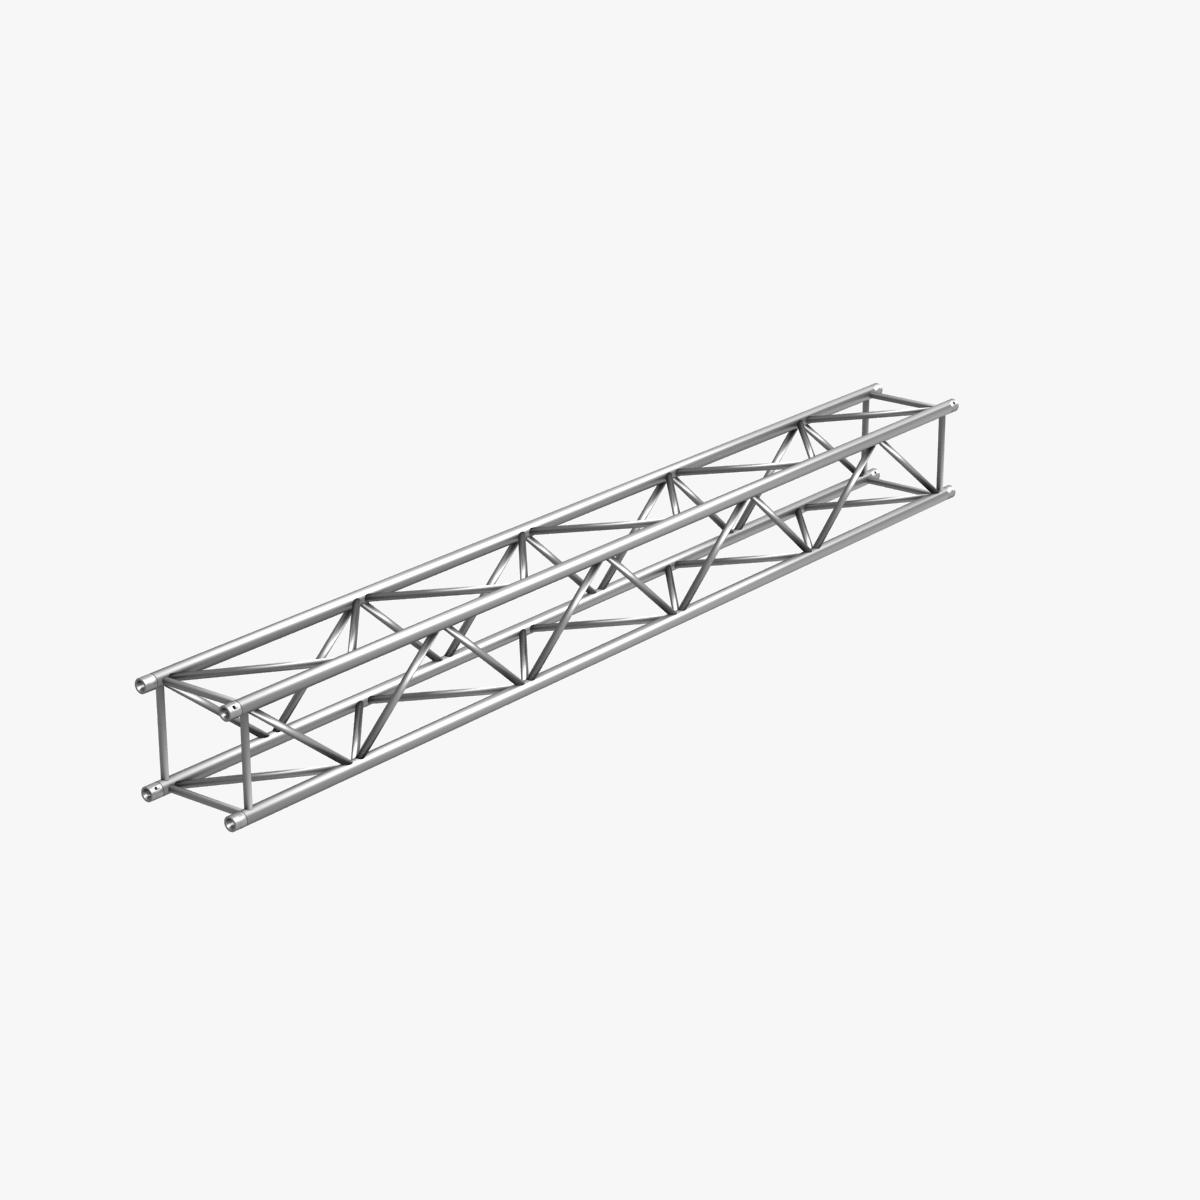 big square truss (collection 10 modular pieces) 3d model 3ds dxf fbx c4d dae  268556